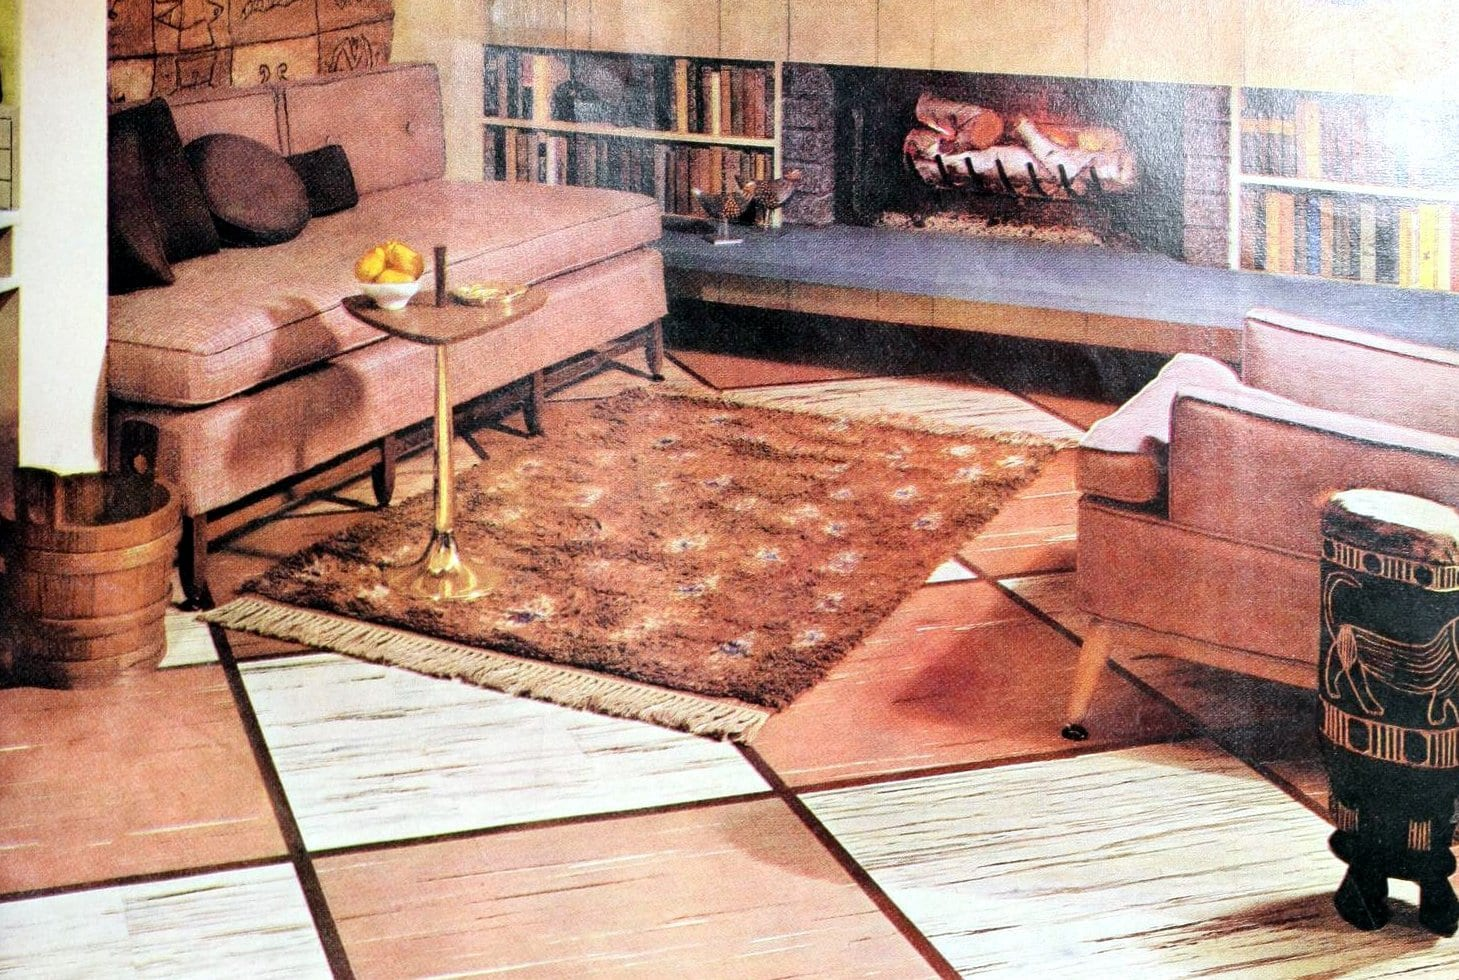 Vintage fifties living room decor with large bordered squares (1959)